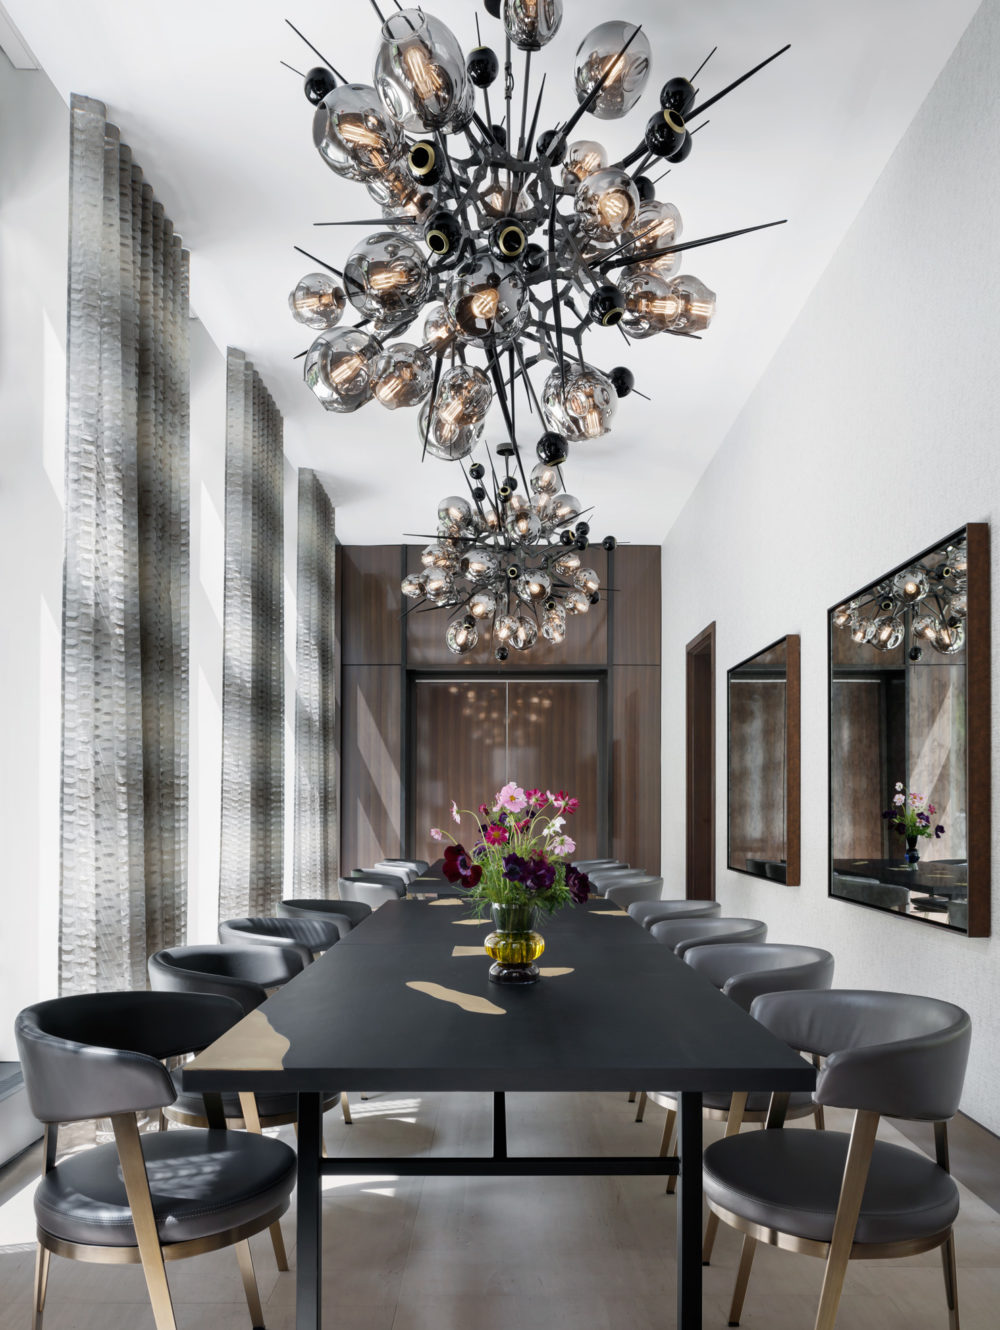 Private dining room at the Park Loggia luxury condos in New York. Long black dining table, tall windows, & large chandelier.